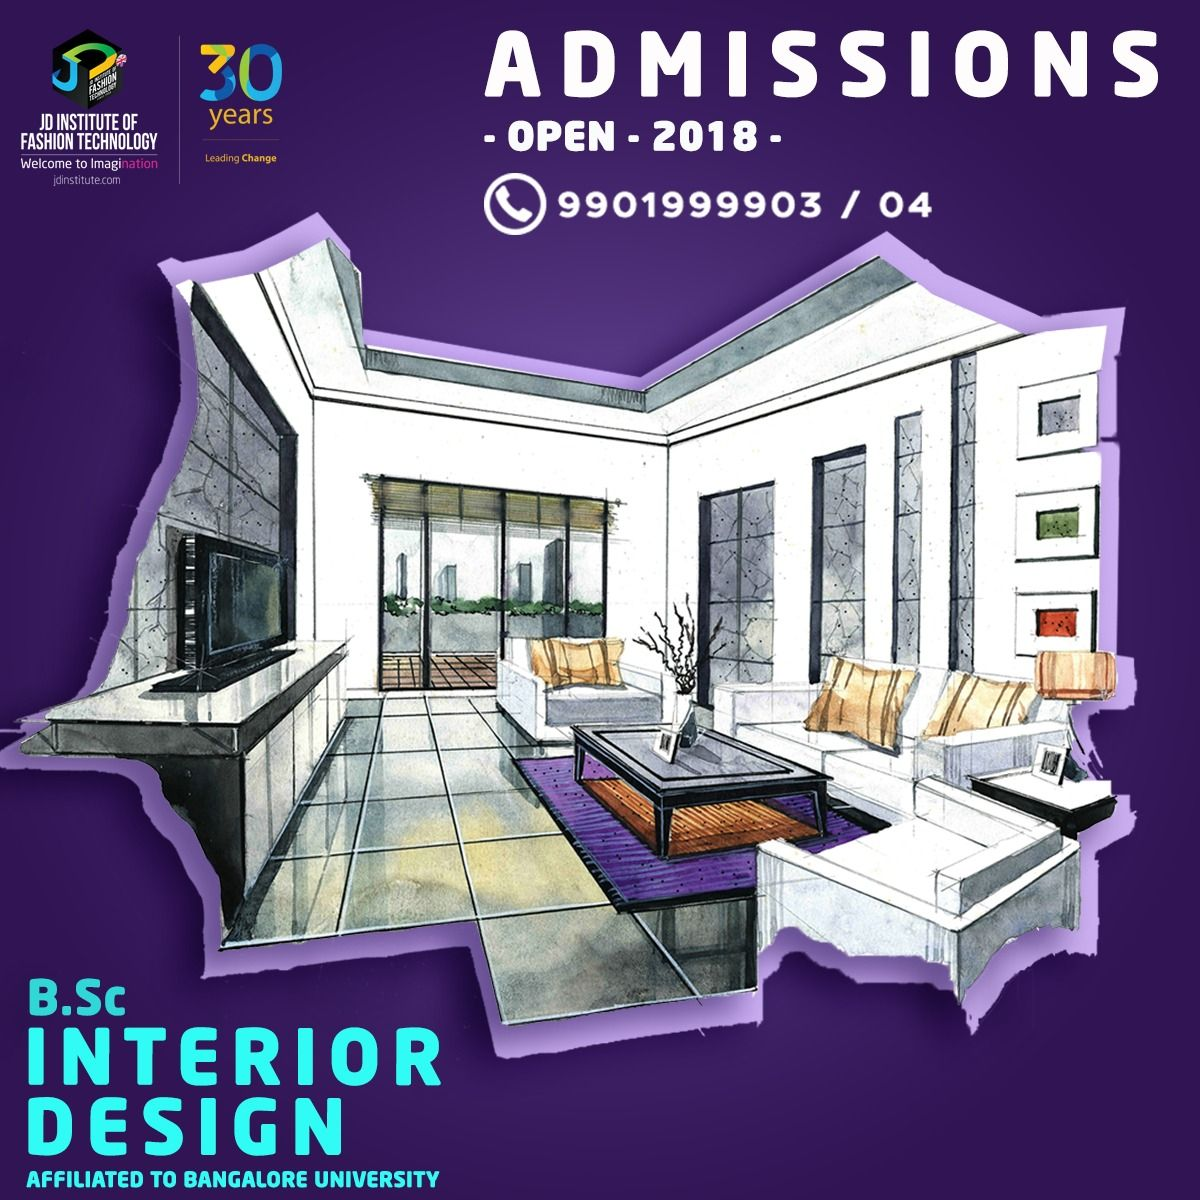 Master The Palette Techniques Materials And Designs Learn Interior Design At Jd Institute O Learn Interior Design Interior Design Courses Technology Fashion